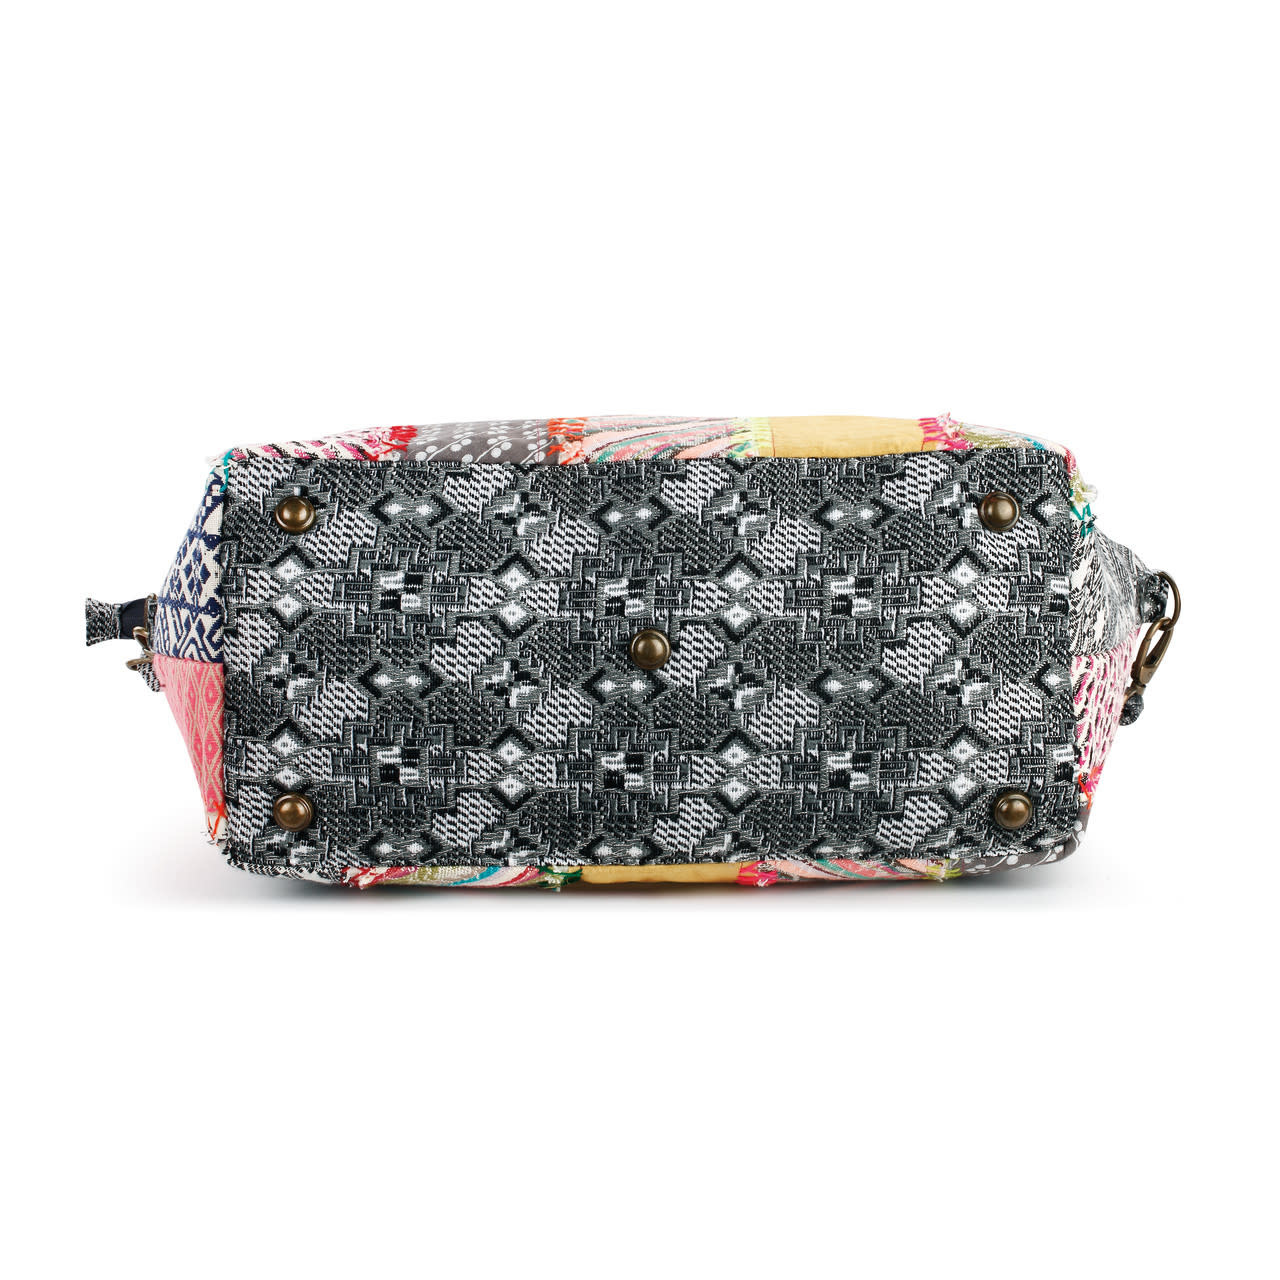 Demdaco Overnight Travel Bag in Multi